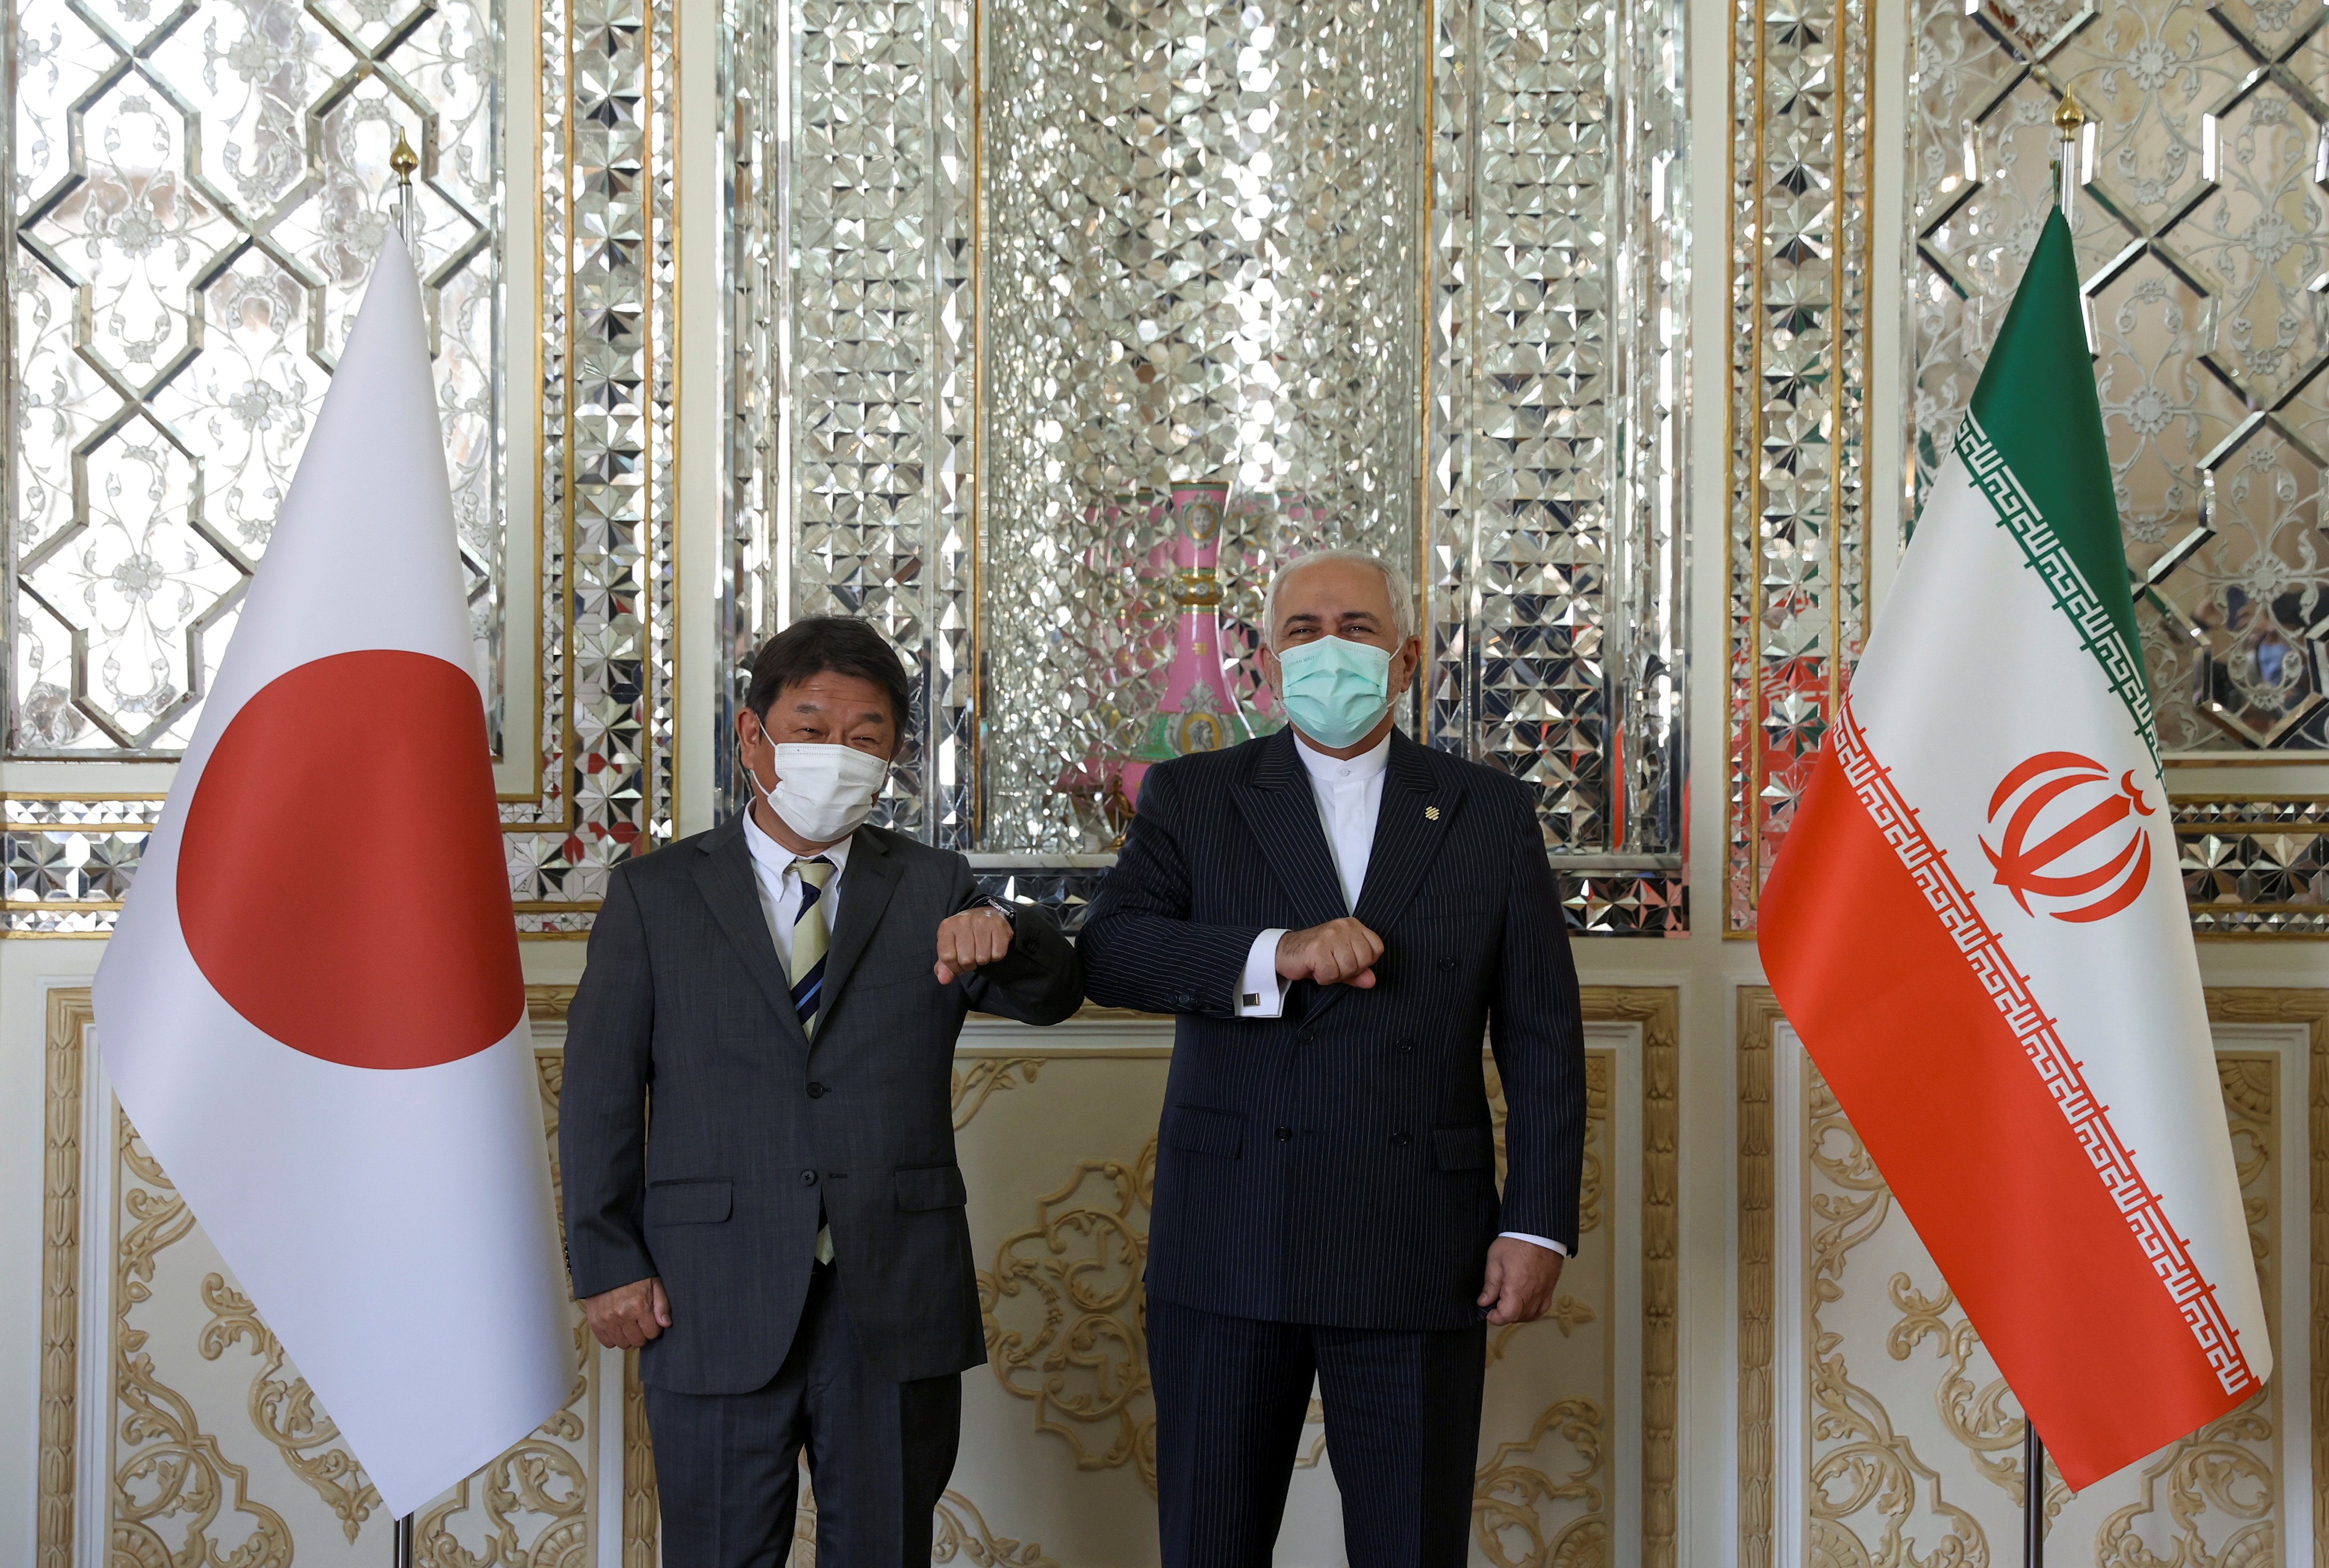 Iran's Foreign Minister Mohammad Javad Zarif and Japanese Foreign Minister Toshimitsu Motegi bump elbows during a meeting in Tehran, Iran August 22, 2021. Majid Asgaripour/WANA (West Asia News Agency) via REUTERS